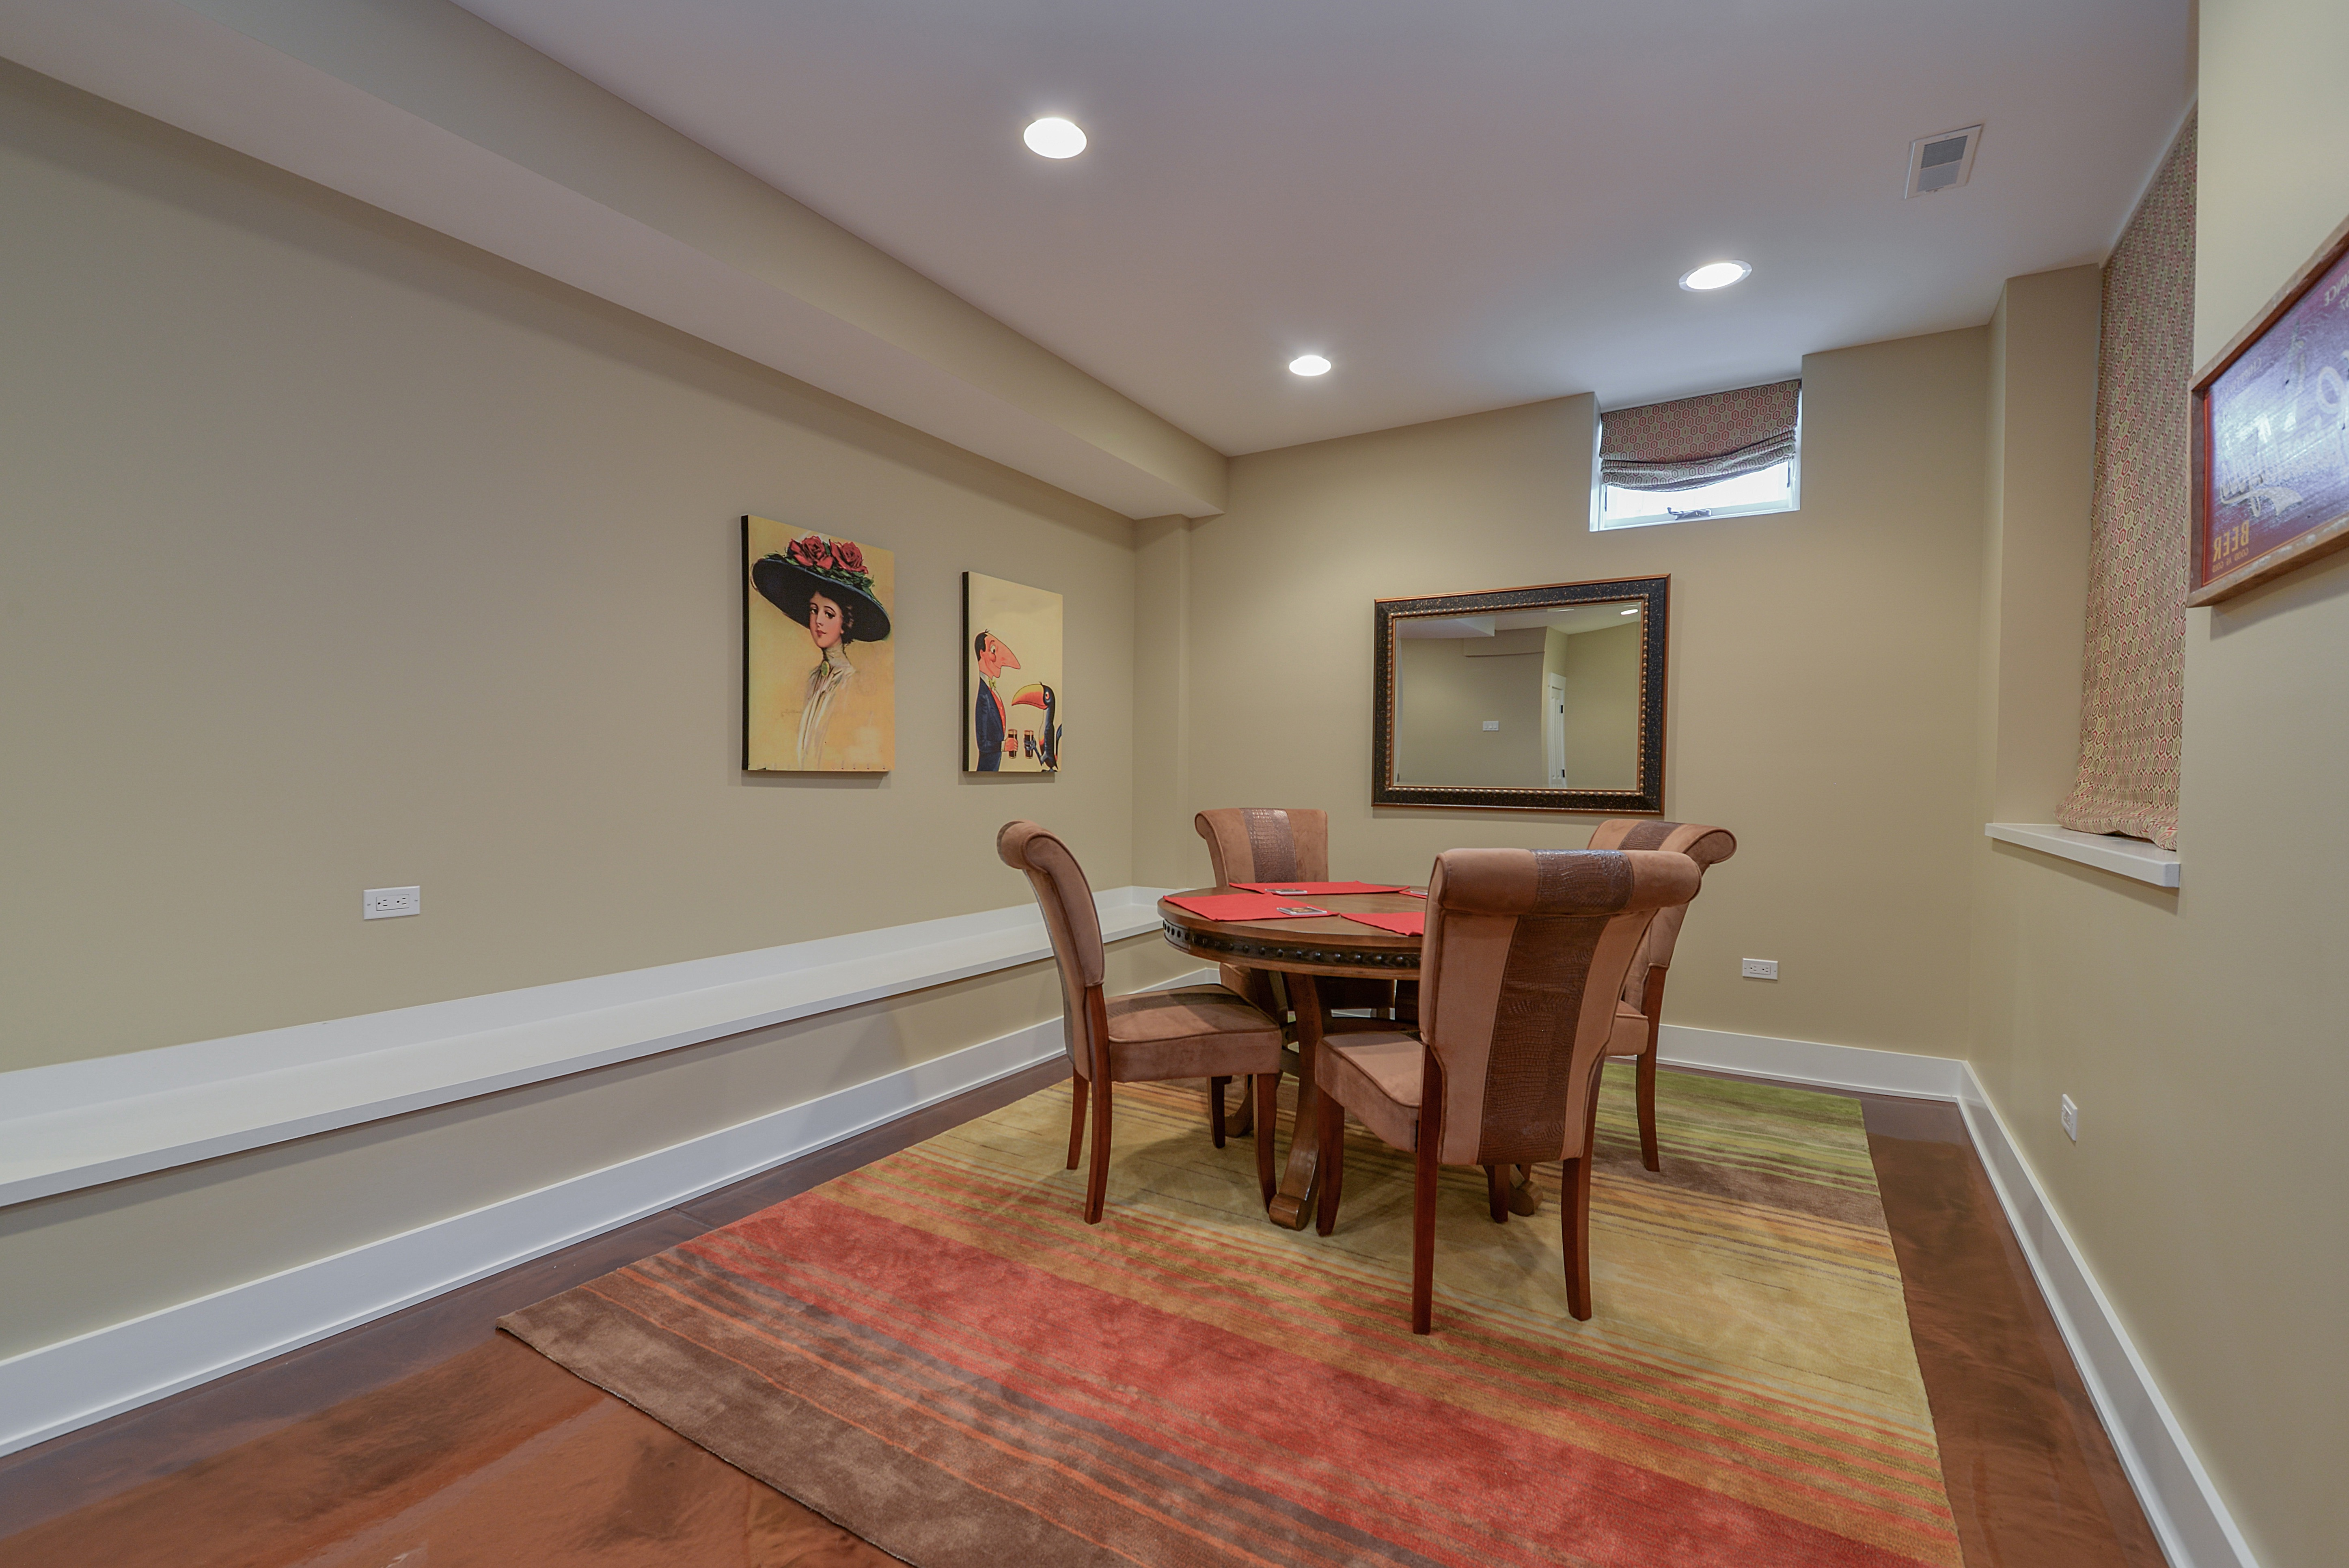 Colorful Striped Rug Under Circular Wood Dining Table (Image 3 of 32)